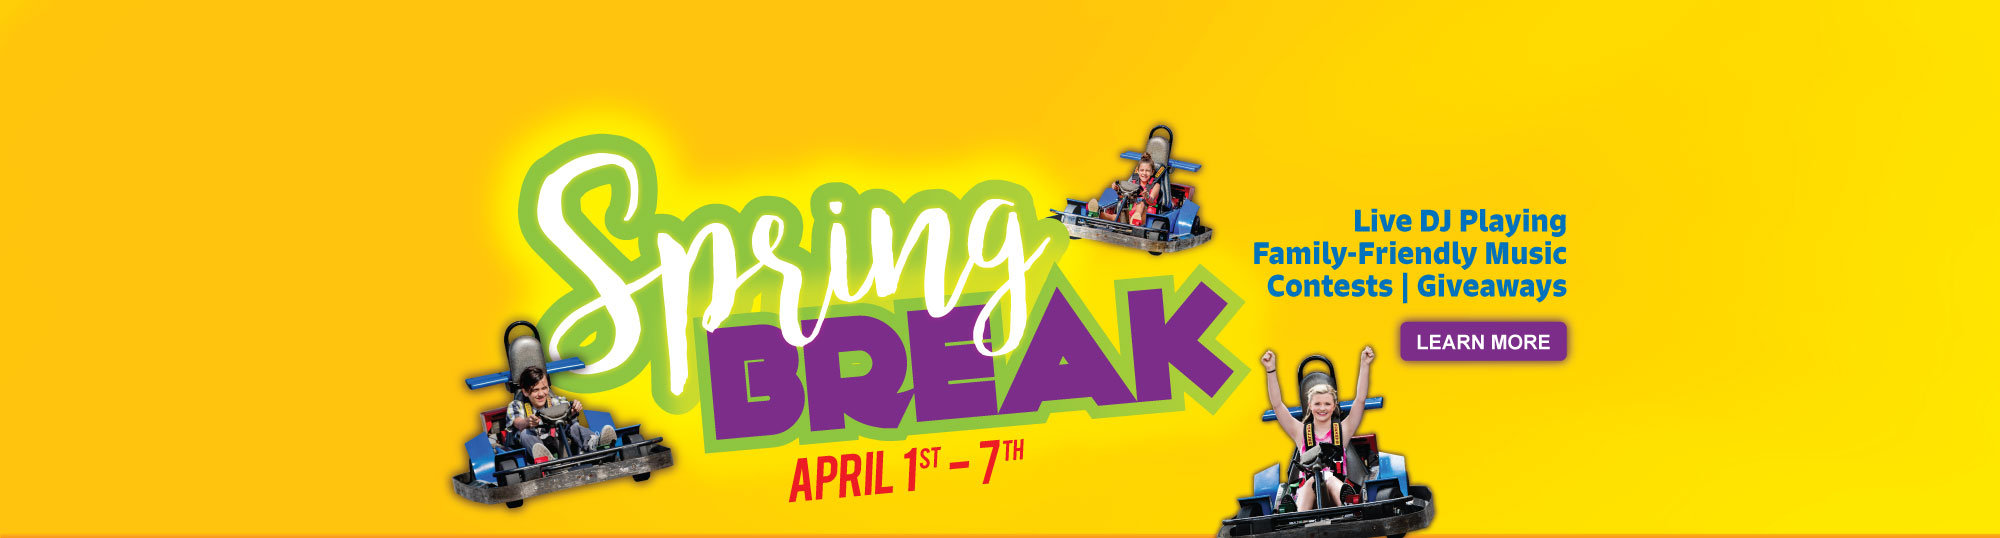 FECS 2019 02 27 WEBSITE Masthead SpringBreak V3 2000X538